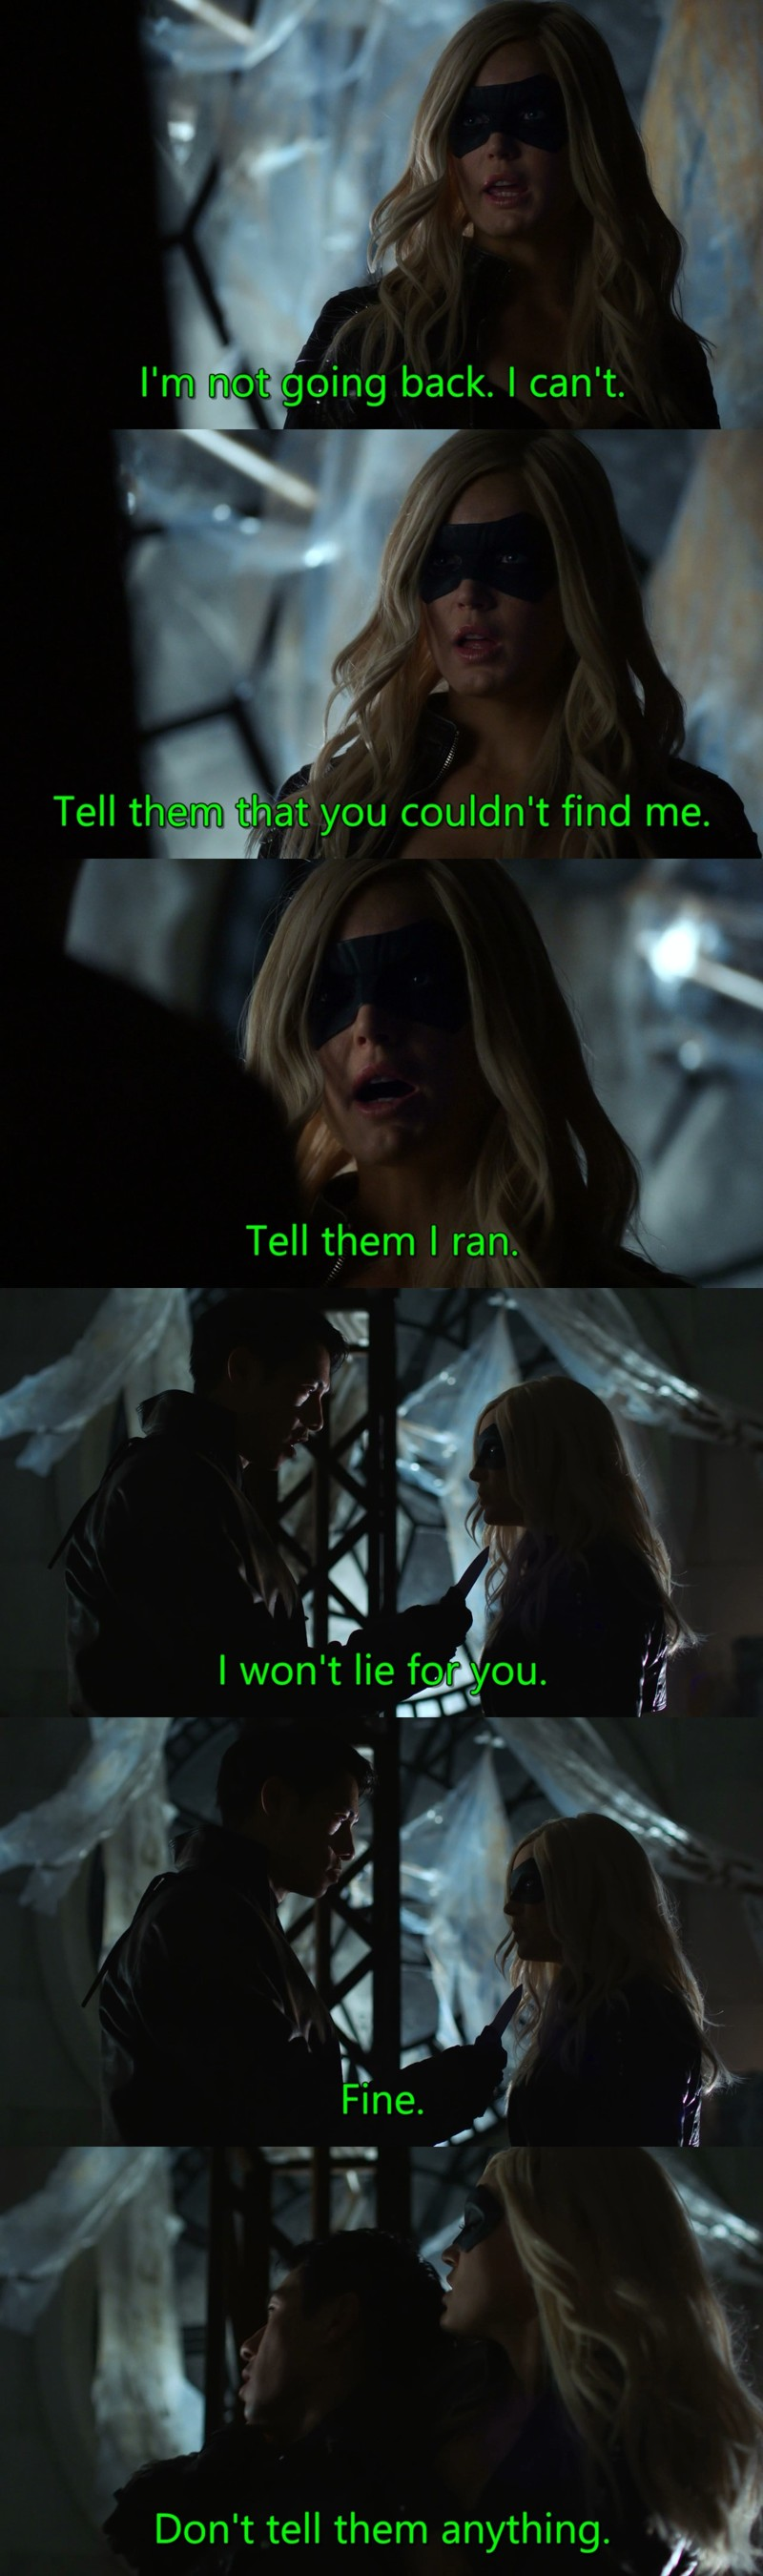 """My new favorite character! If she will be a regular in this show, then I can live with Arrow being """"toothless"""" hero."""